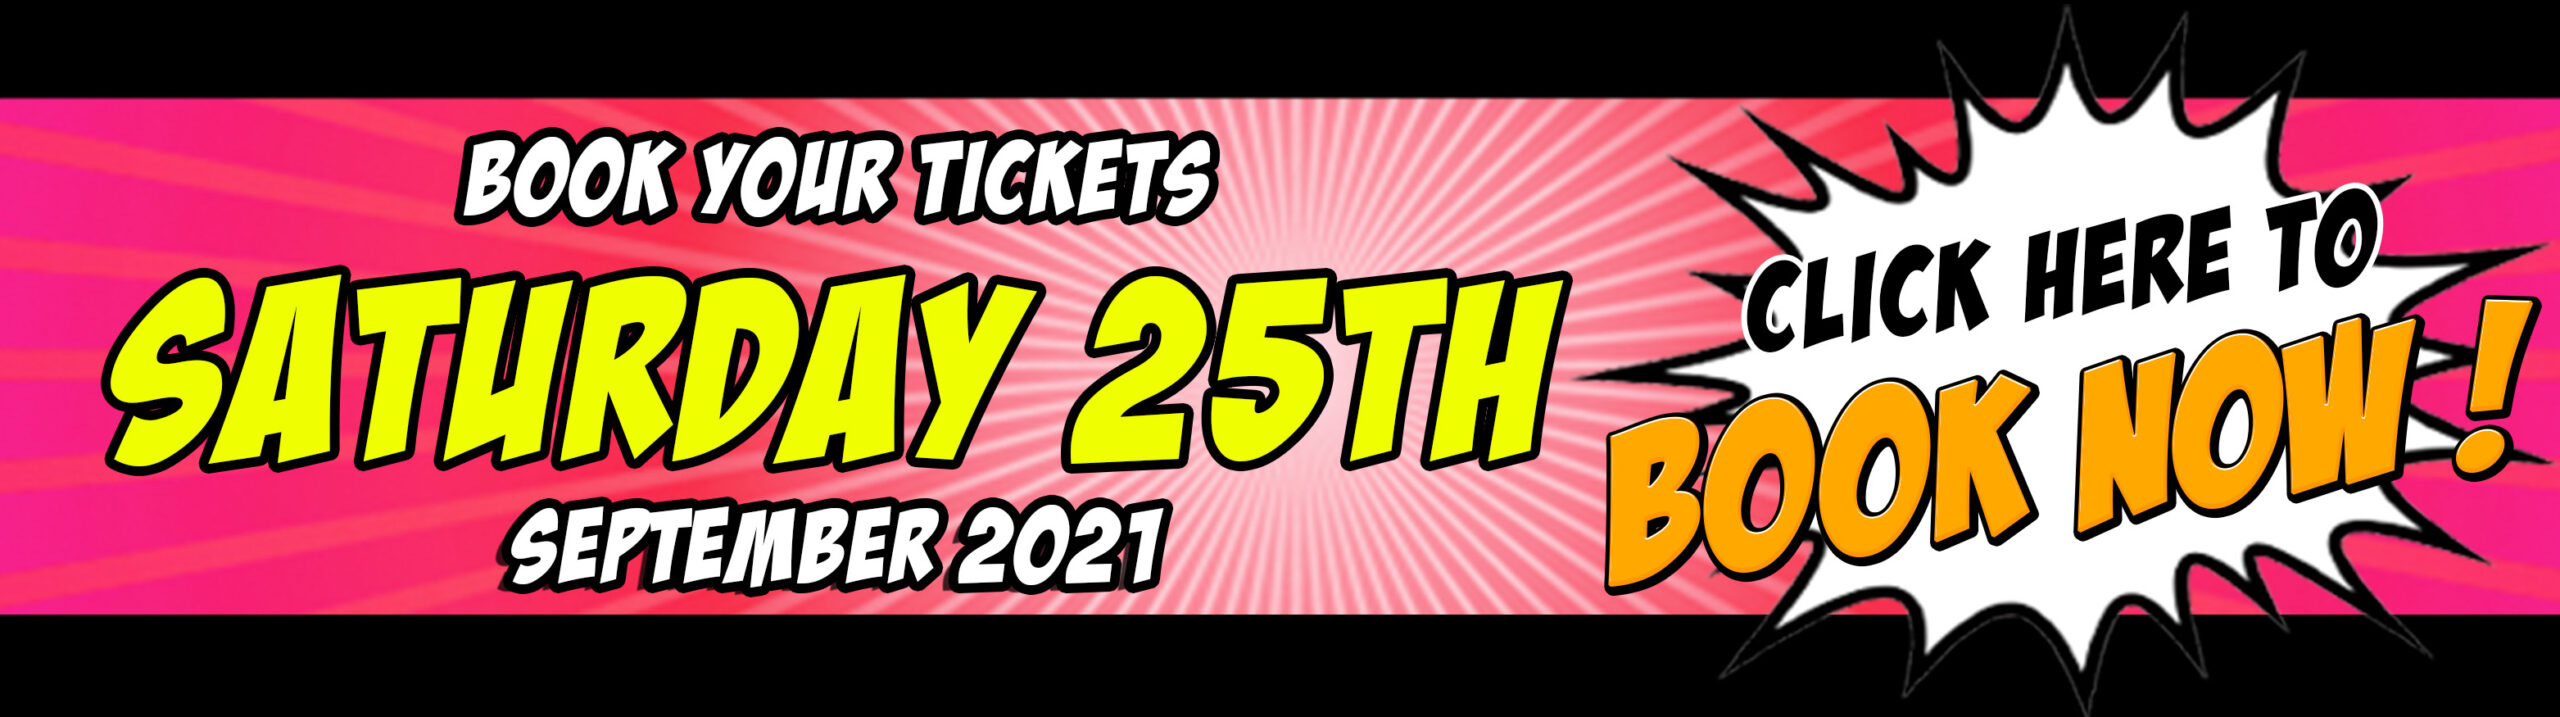 Buy your NORCON Saturday 25th September 2021 tickets